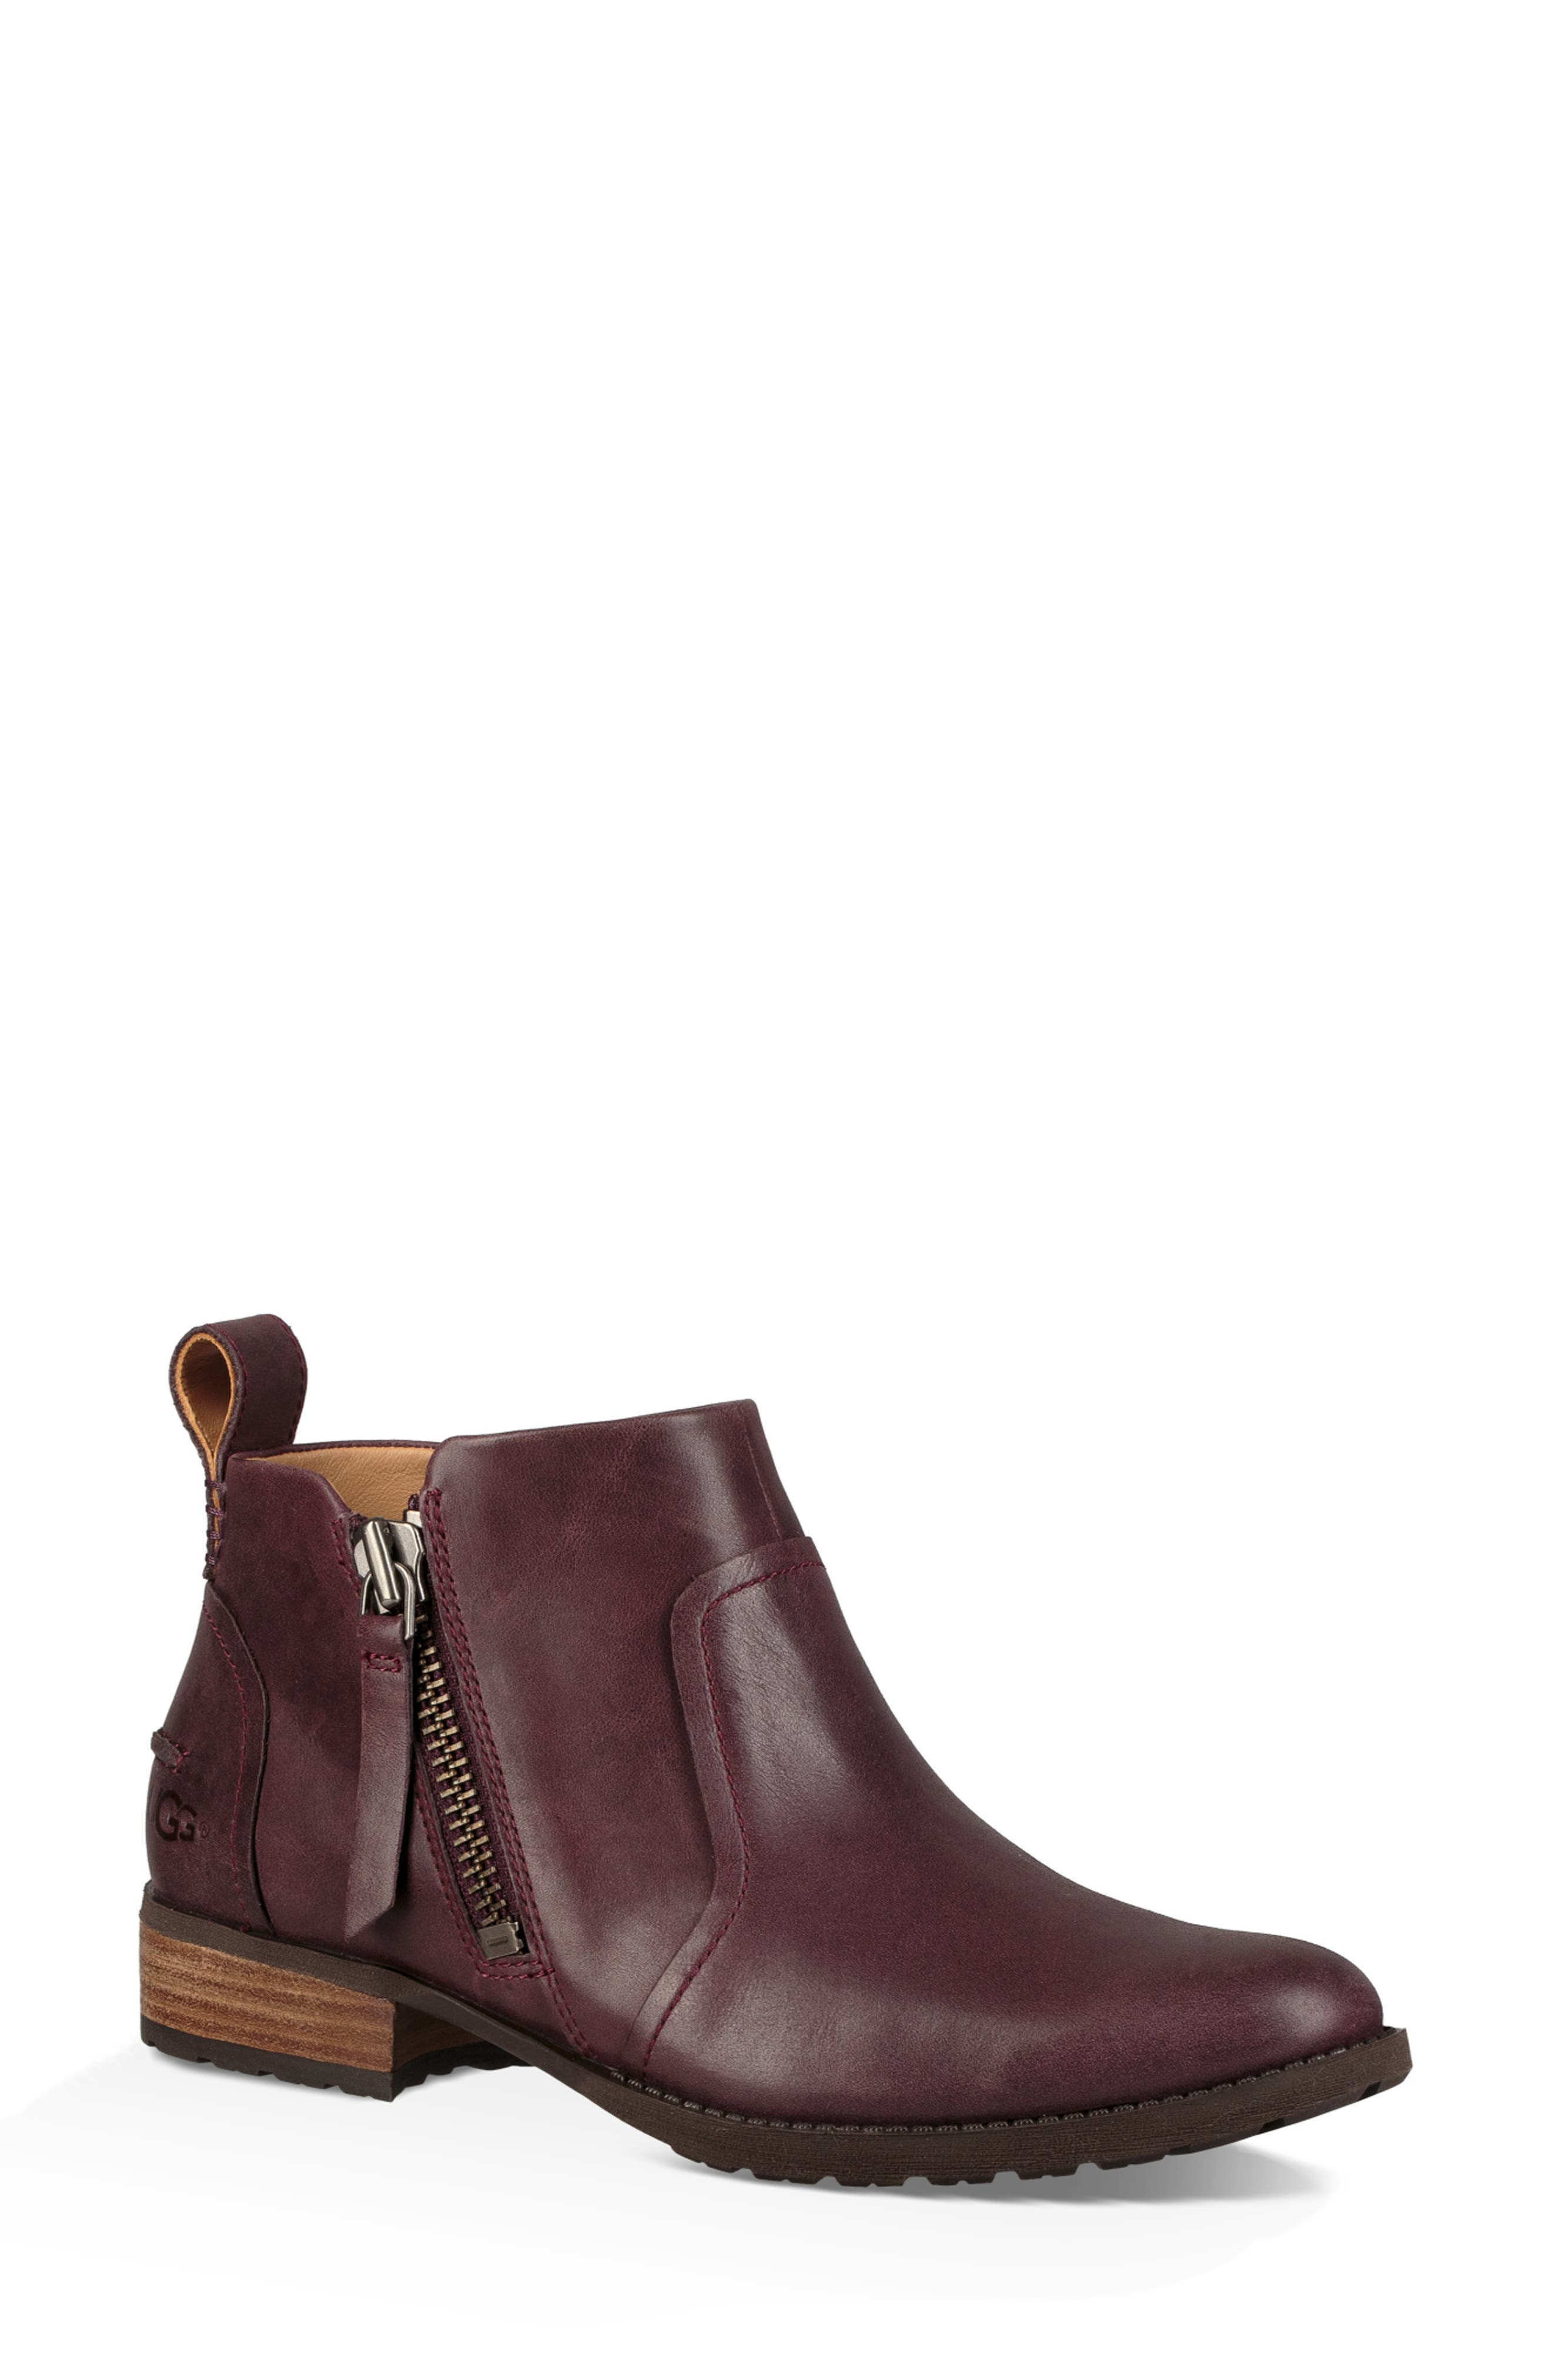 Aureo Bootie,                         Main,                         color, OXBLOOD LEATHER